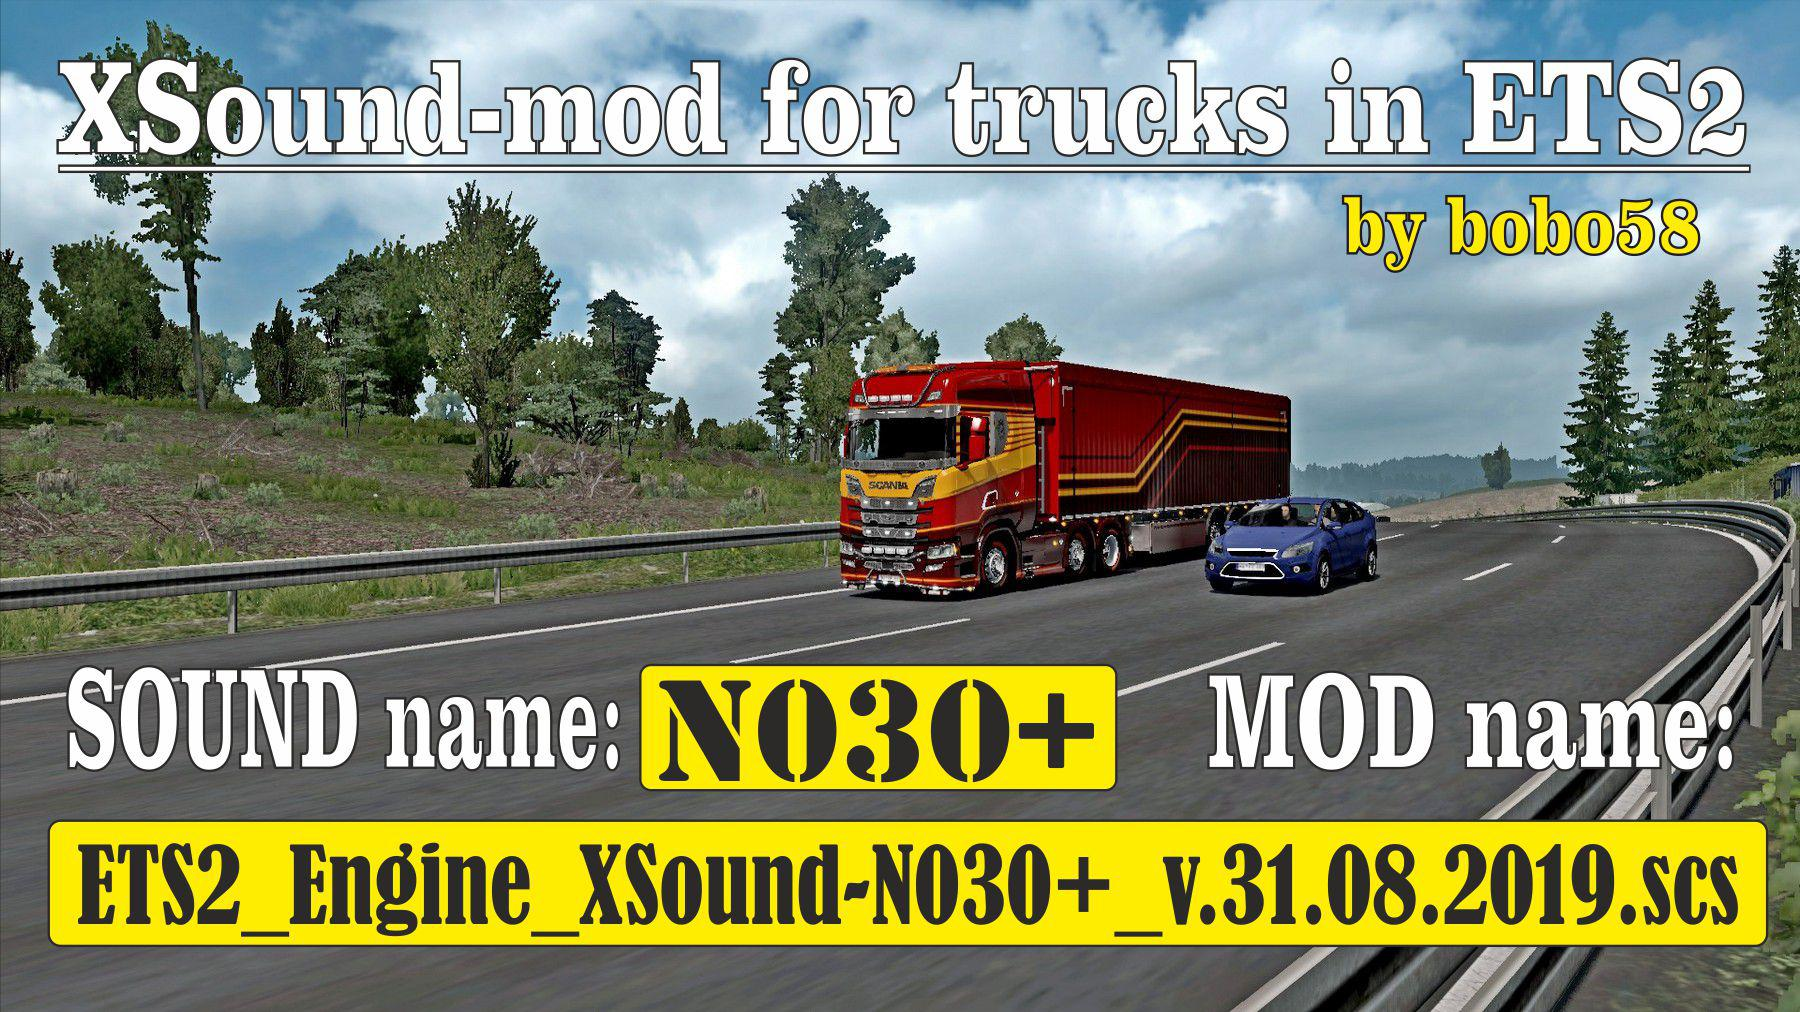 ETS2 ENGINE XSOUND N030+ 1 35 X MOD 2 - ETS 2 Mods | Euro